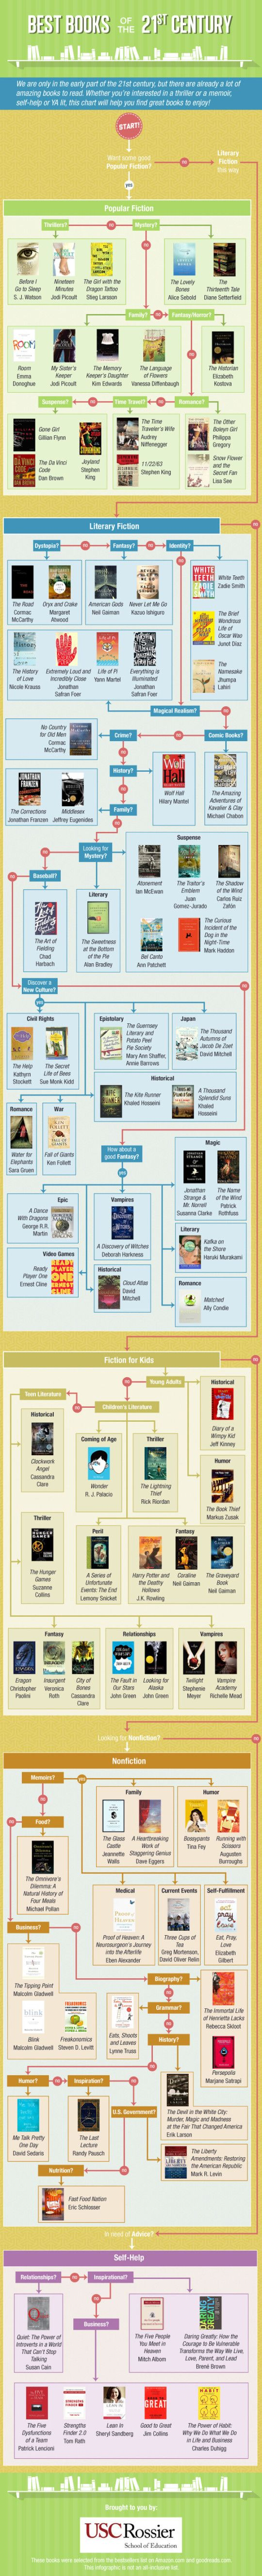 A detailed guide to the best books of the 21st century infographic